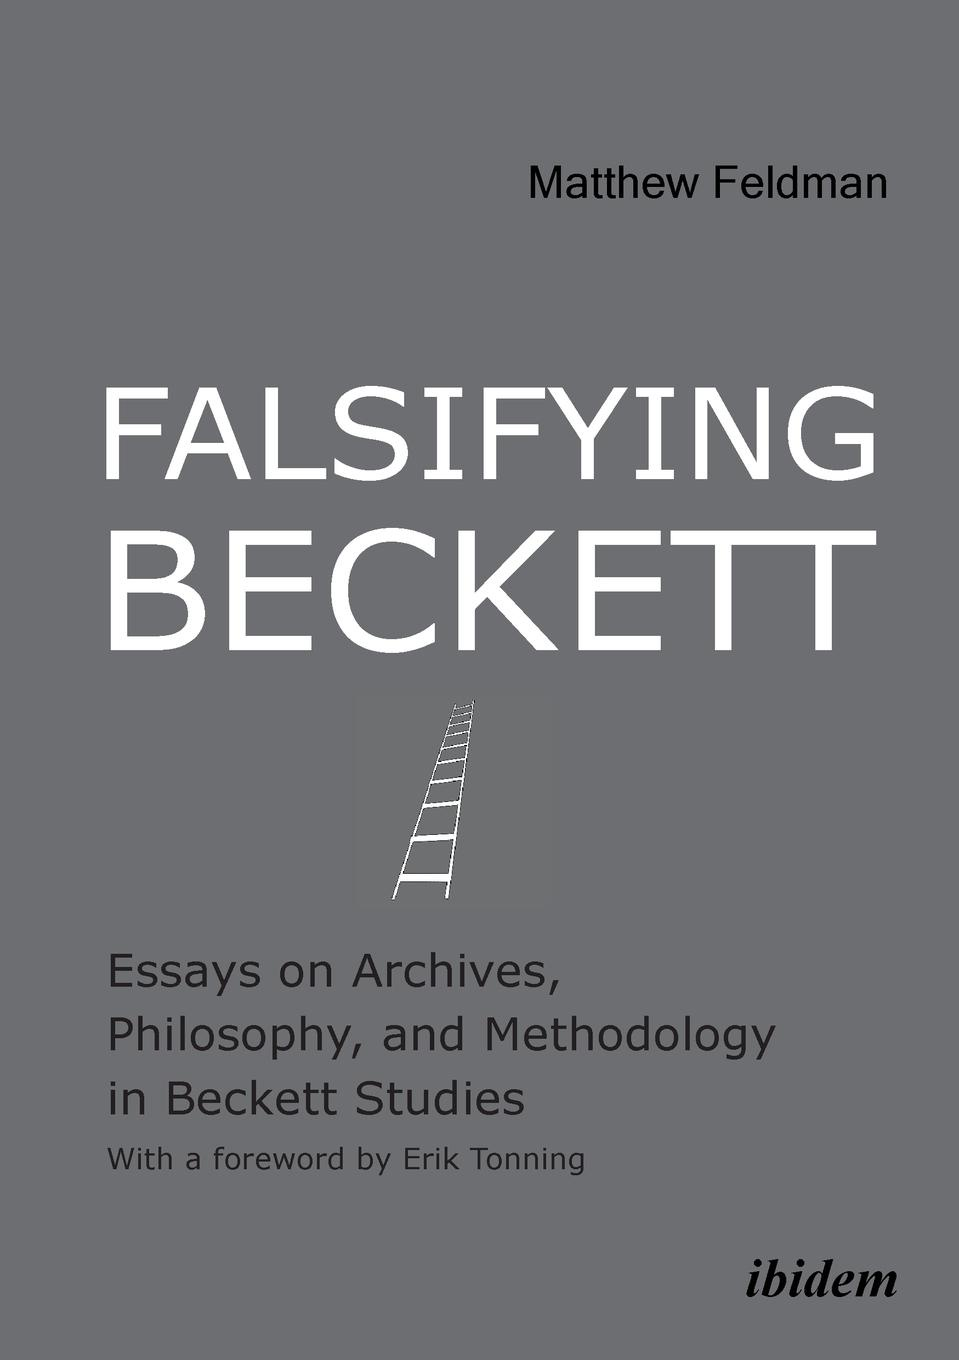 Matthew Feldman Falsifying Beckett. Essays on Archives, Philosophy, and Methodology in Beckett Studies bronwyn williams beckett s birthright